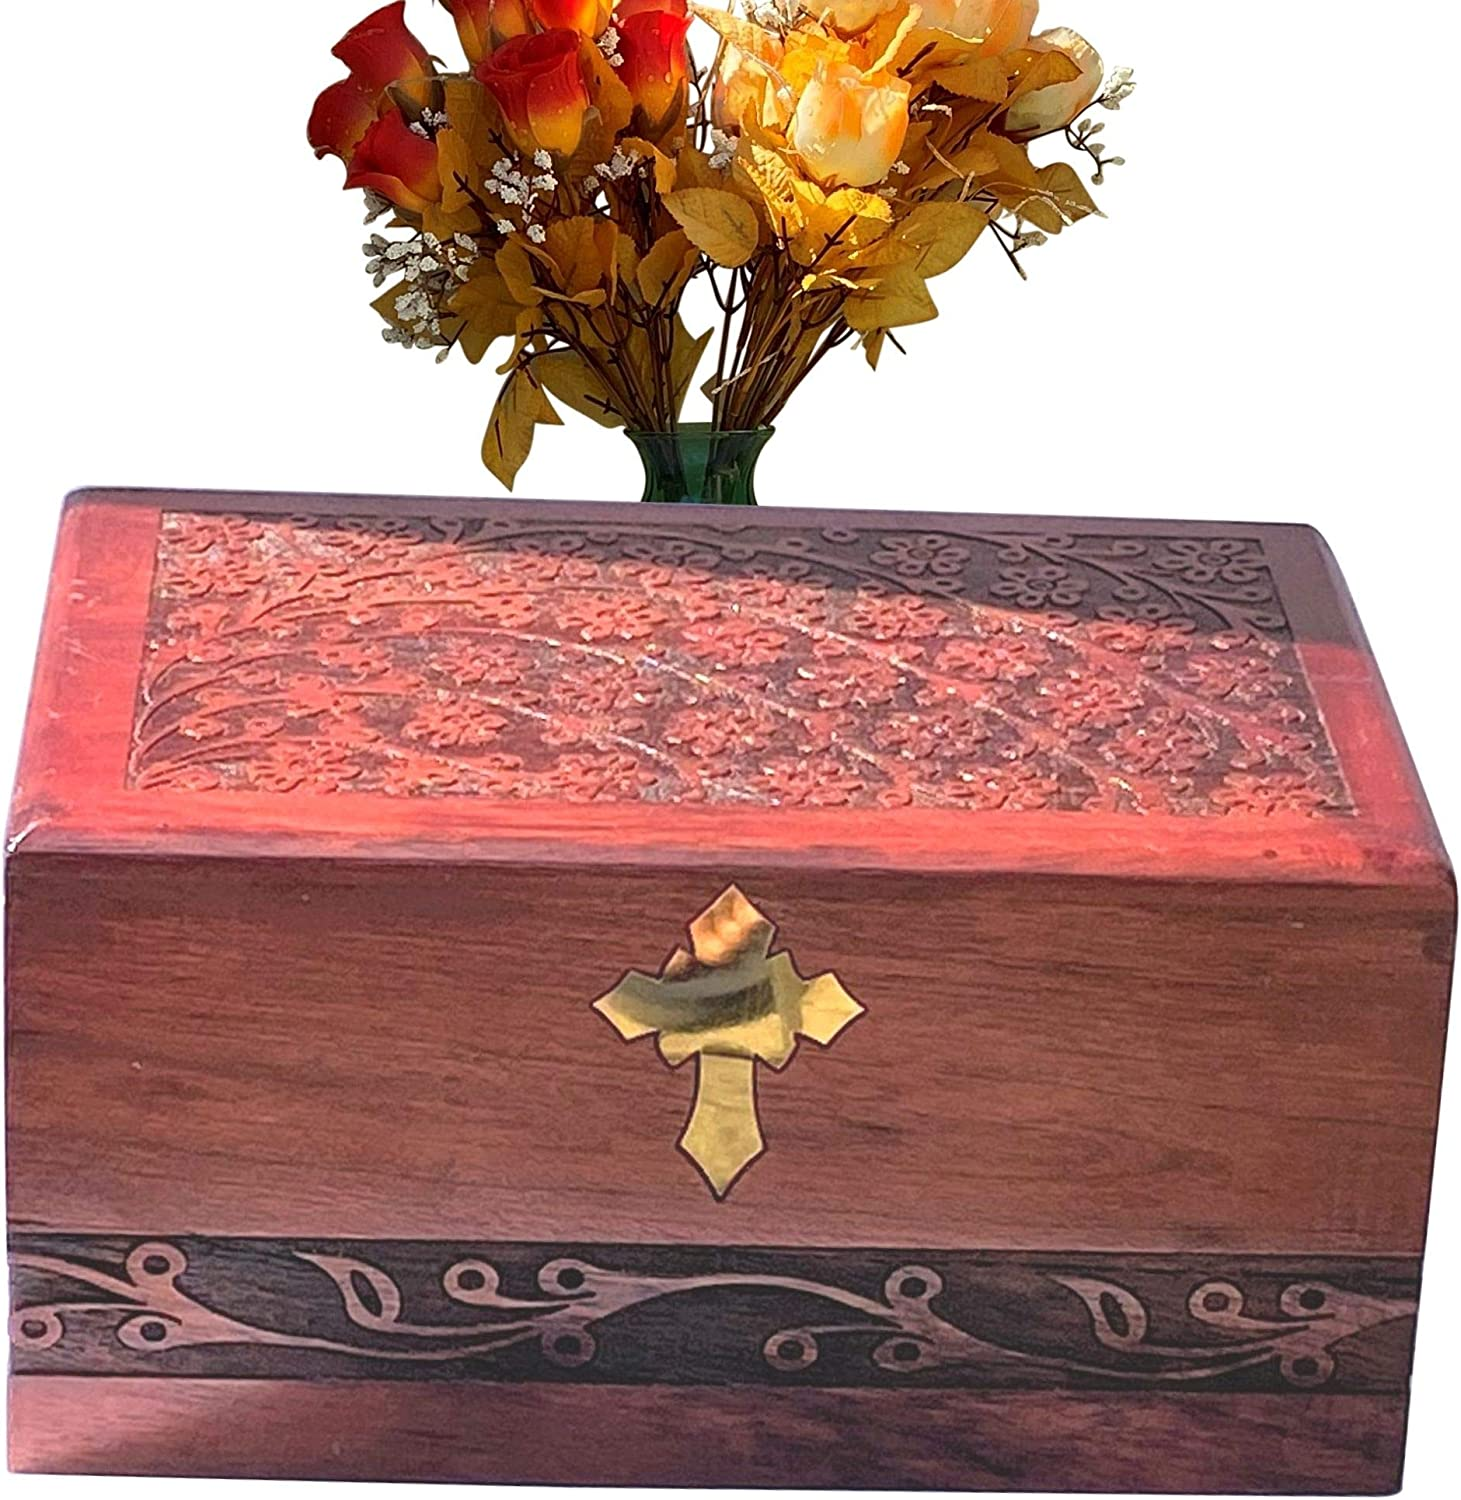 Mother Urns for Human Ashes Wooden Adult Extra Large Memorial Cremation Funeral Burial Decorative Tree of Life Ash Box for Woman Brother xlarge size Wood Humans Remains Mom Dad Male Child Men